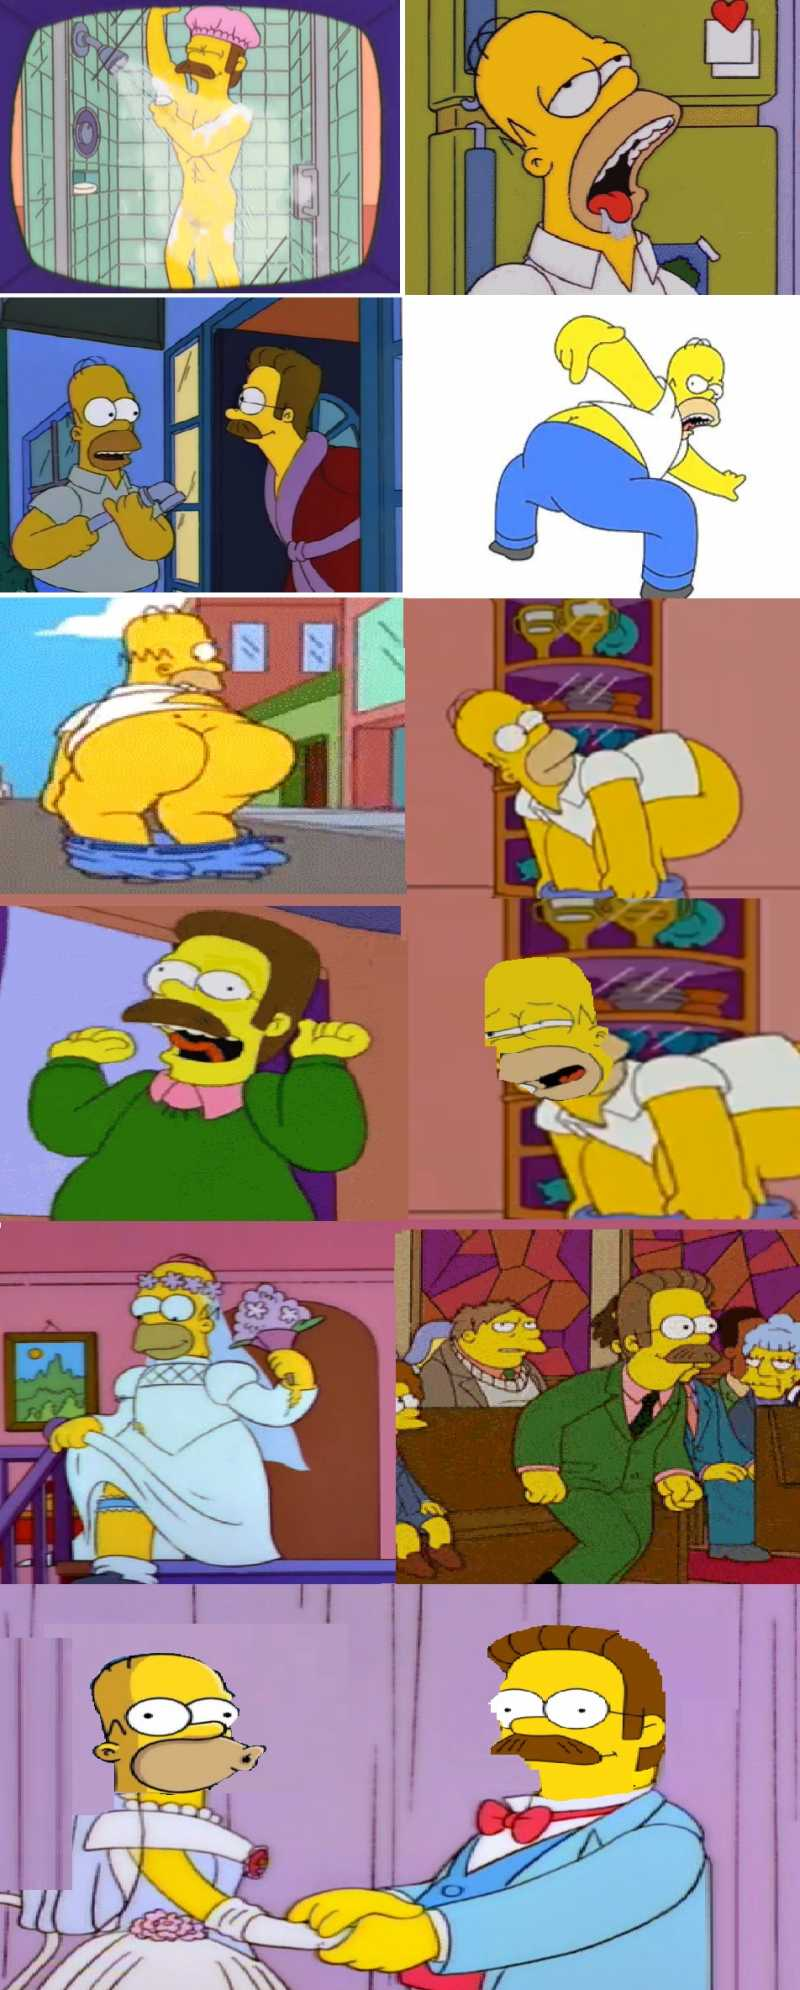 Homer falls in love with flanders and wants to receive love from the back